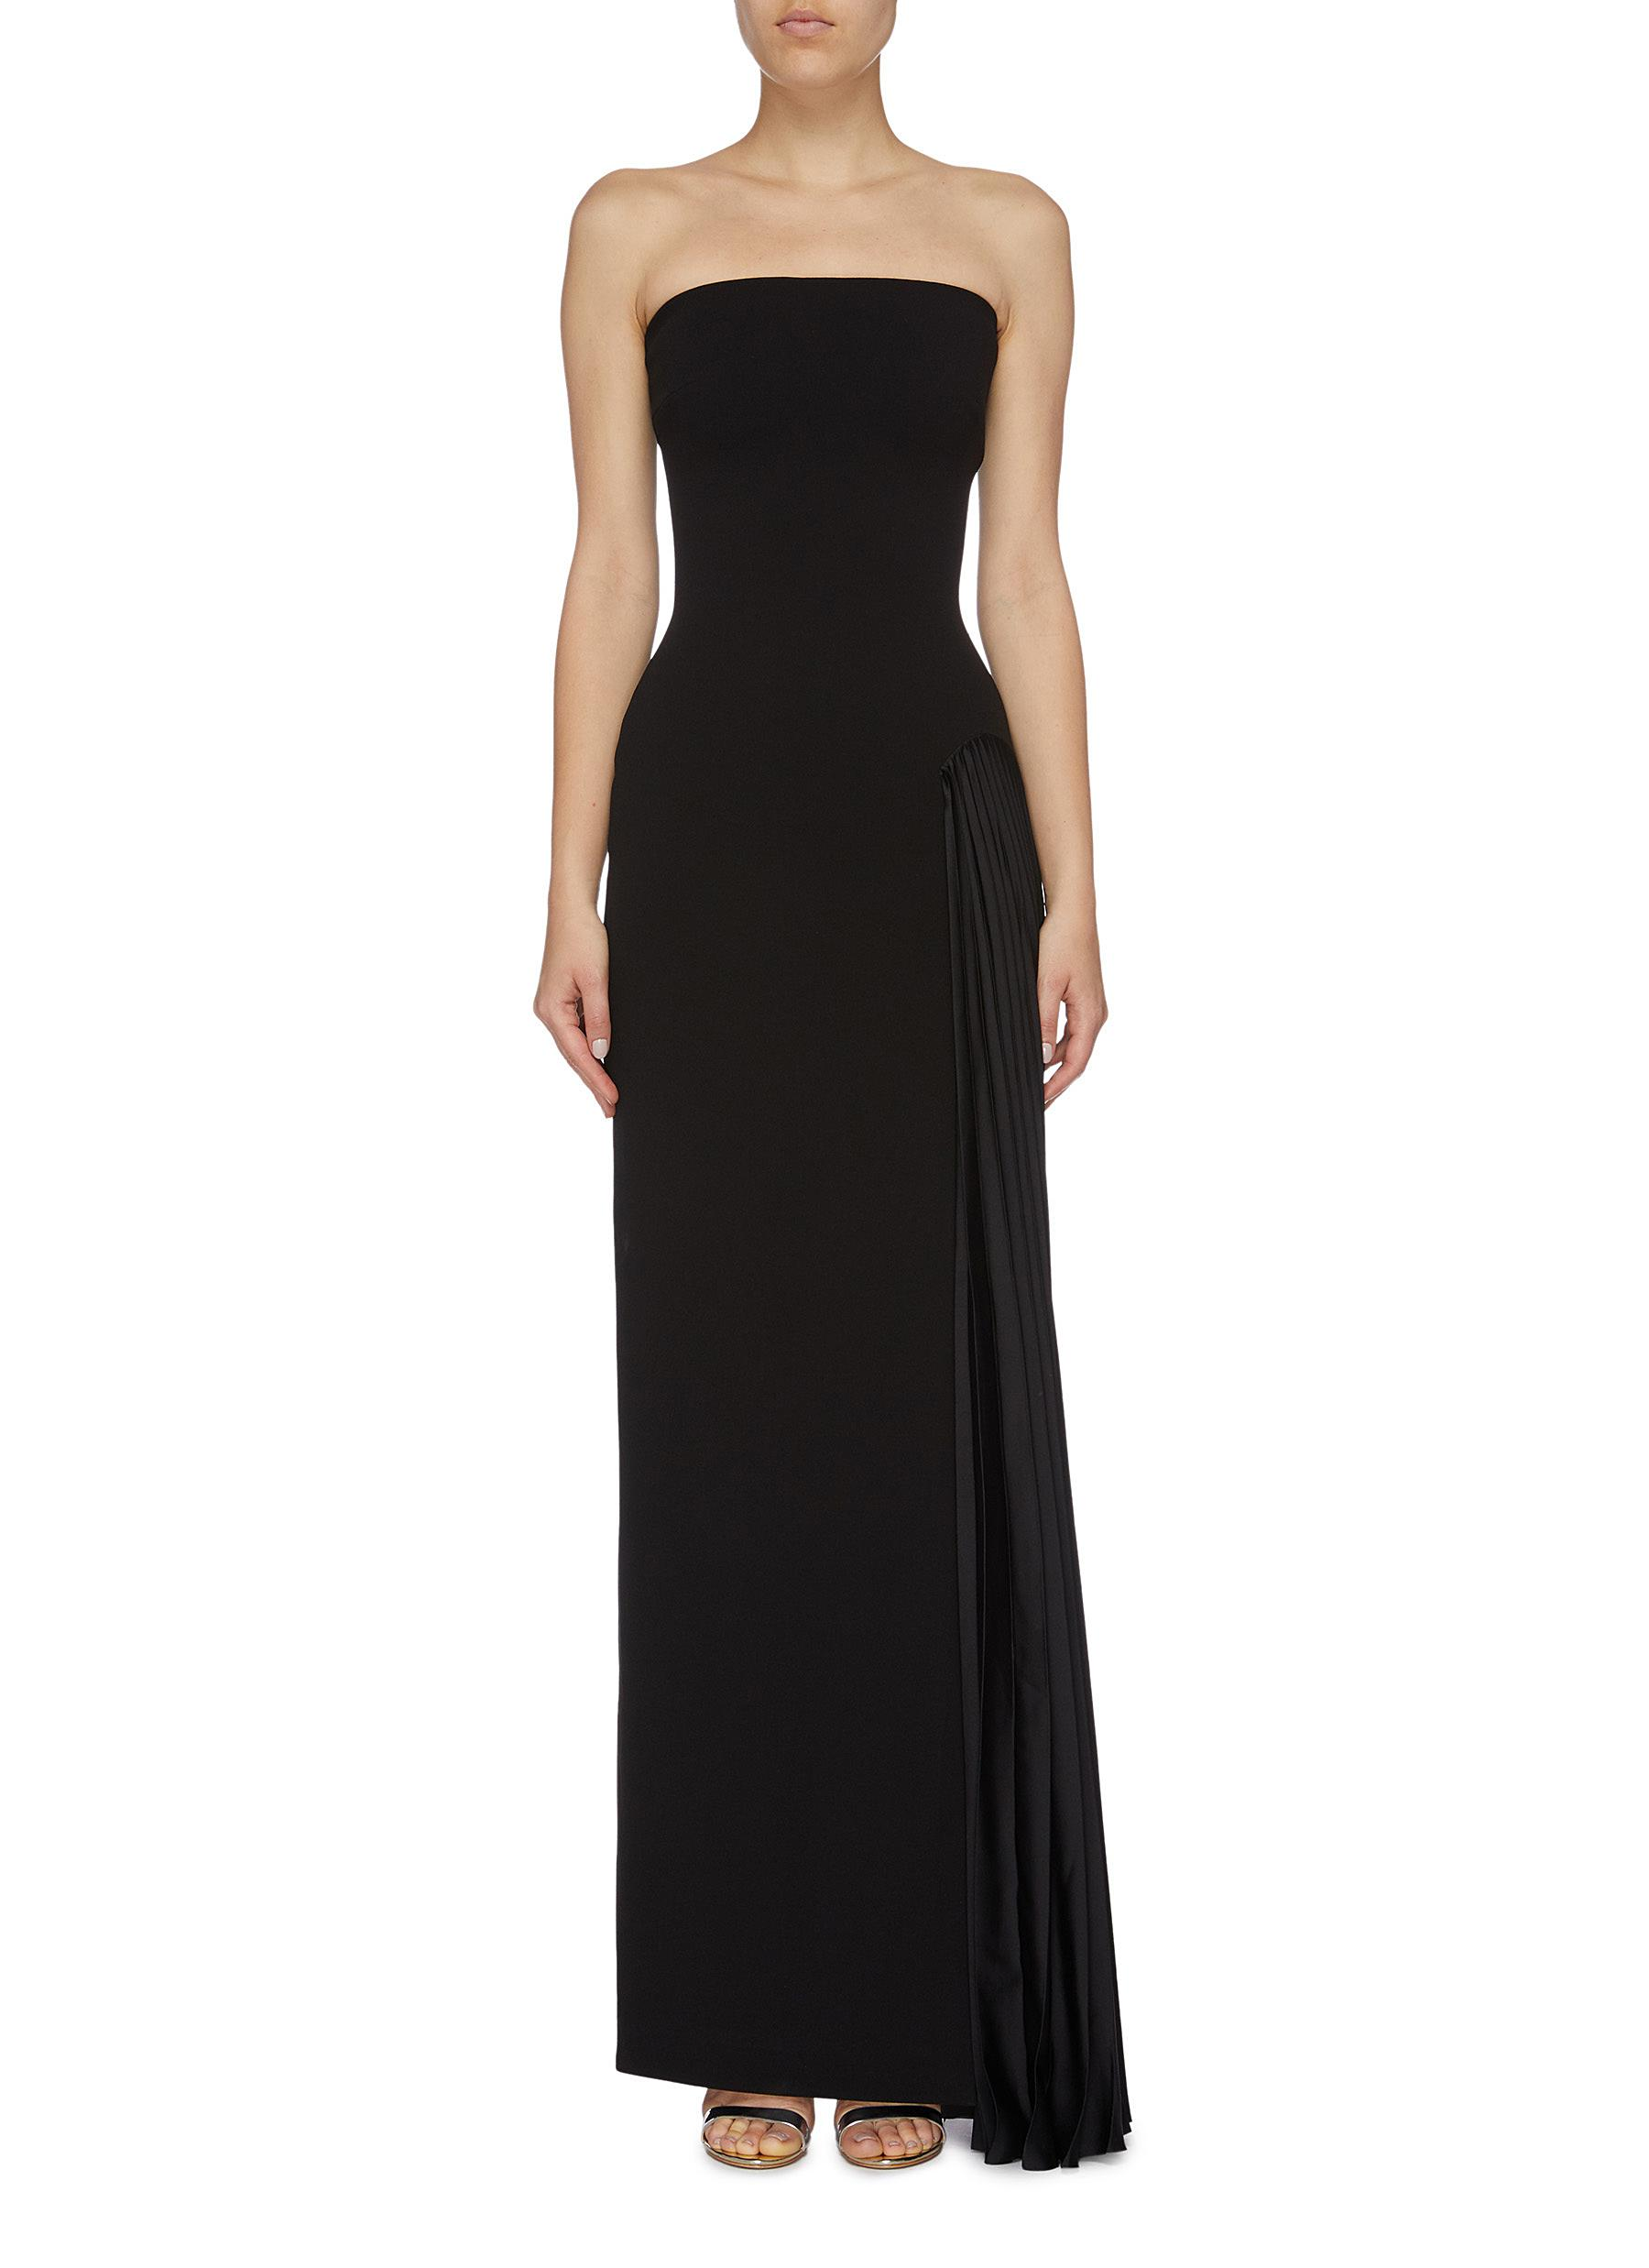 Dolly pleated satin drape strapless crepe dress by Solace London